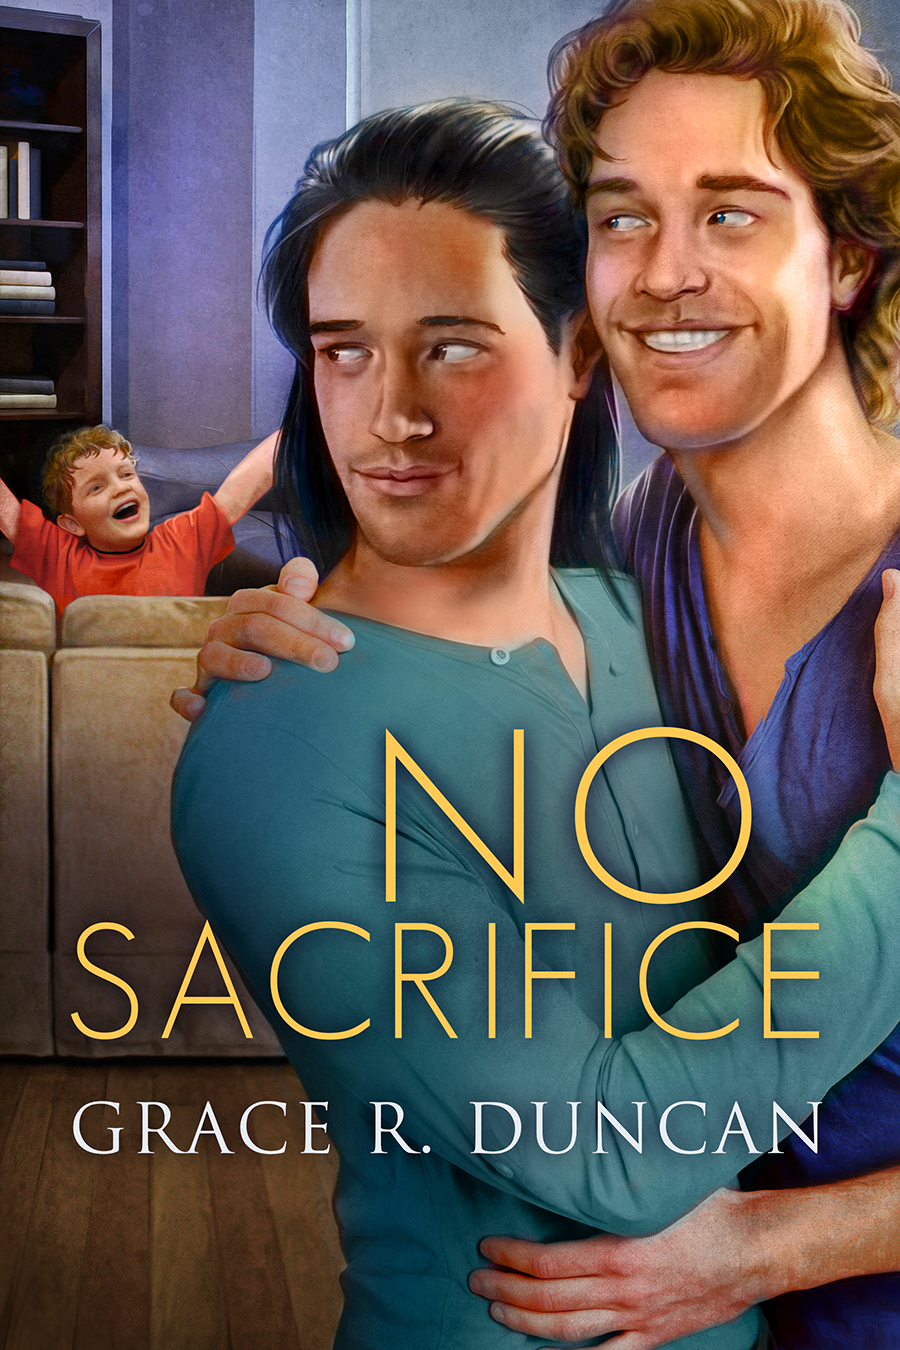 No Sacrifice is OUT!!!